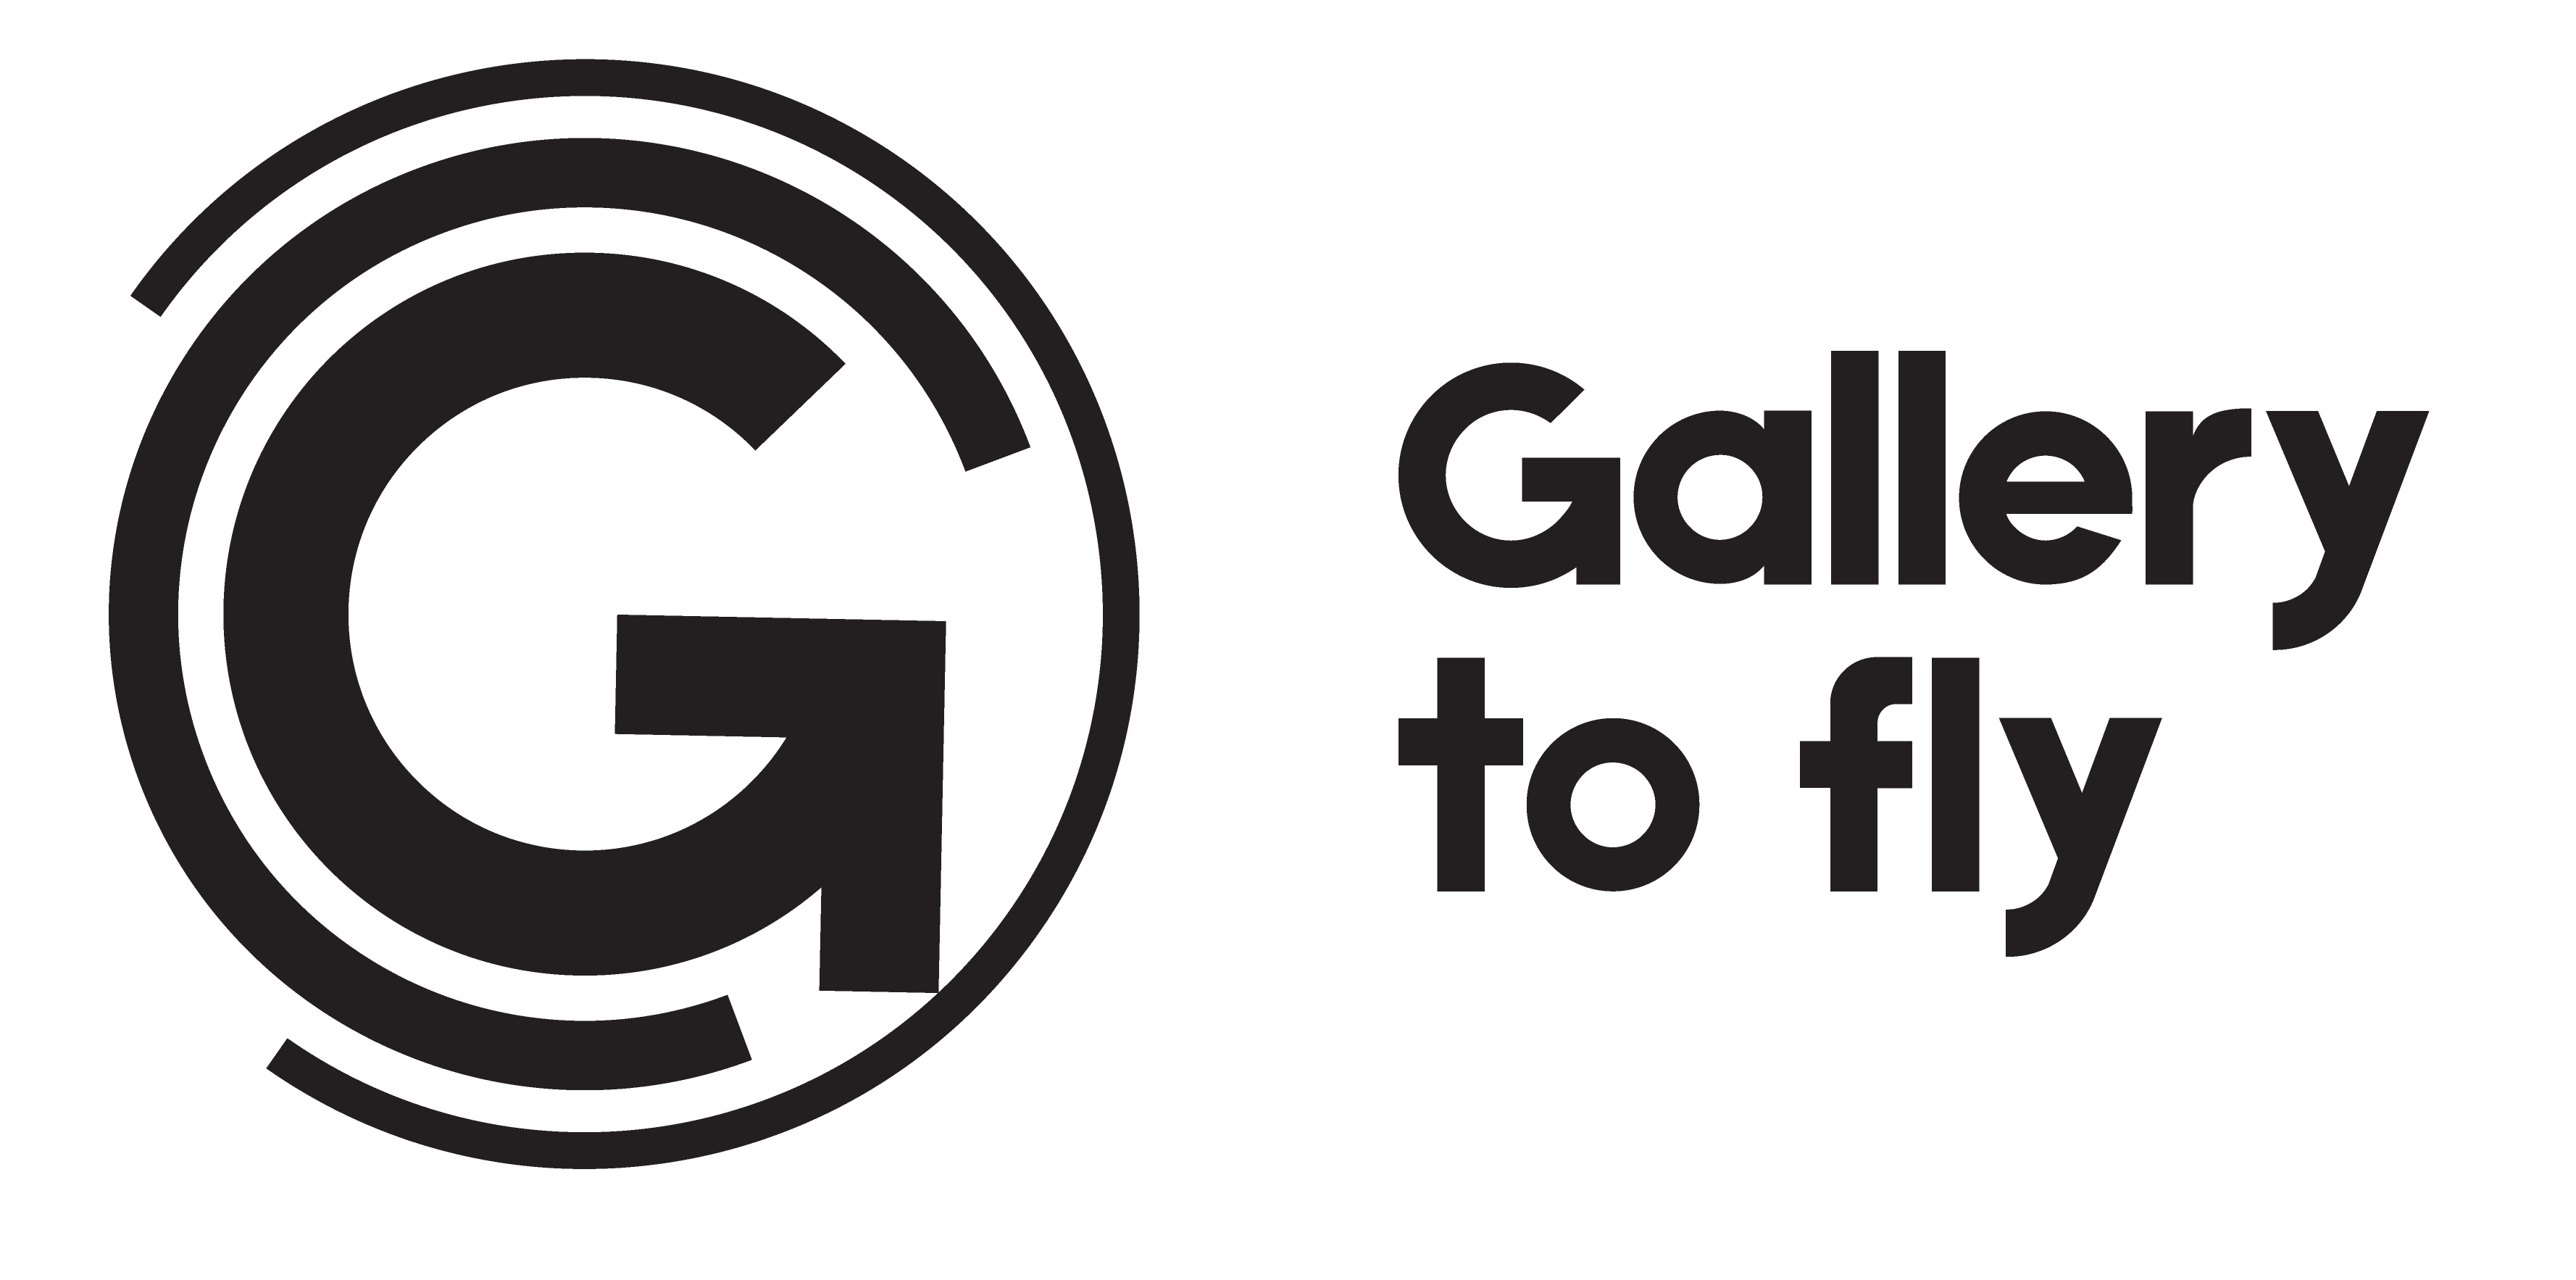 Gallery To Fly logo